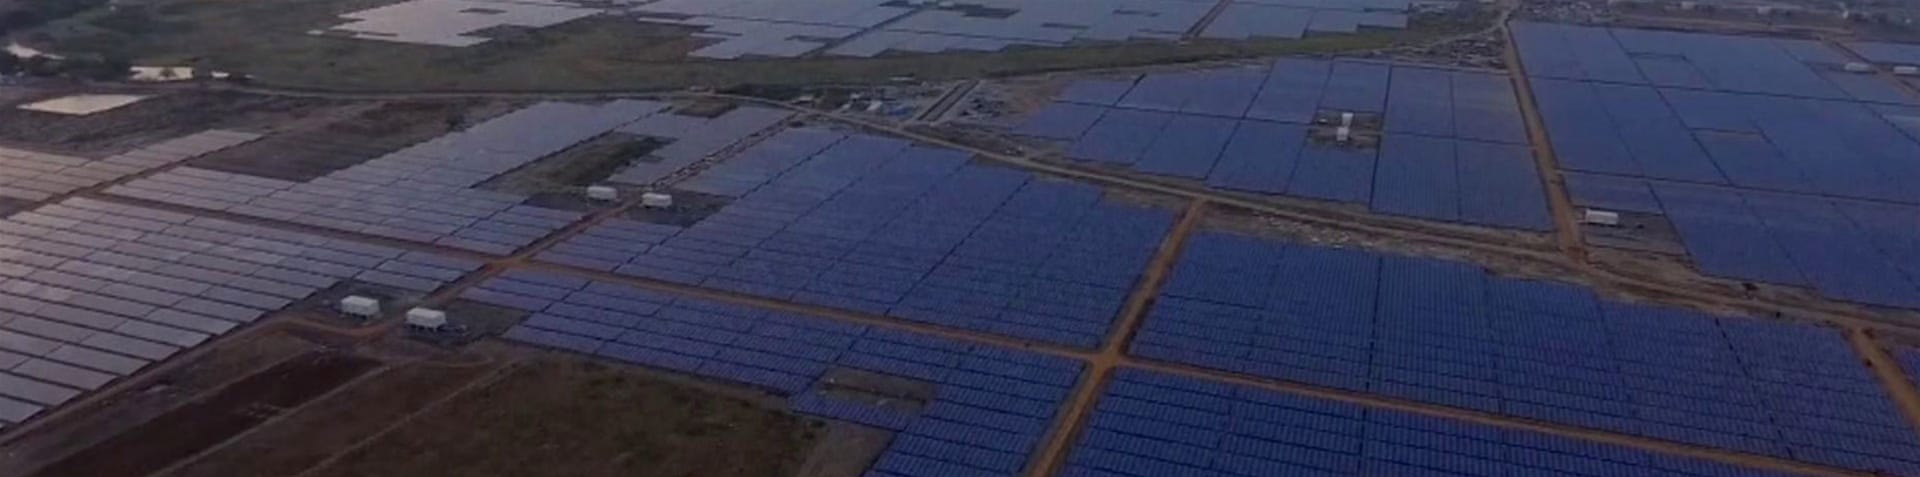 The vast solar power plant covers an area of 10 square kilometres [Reuters]